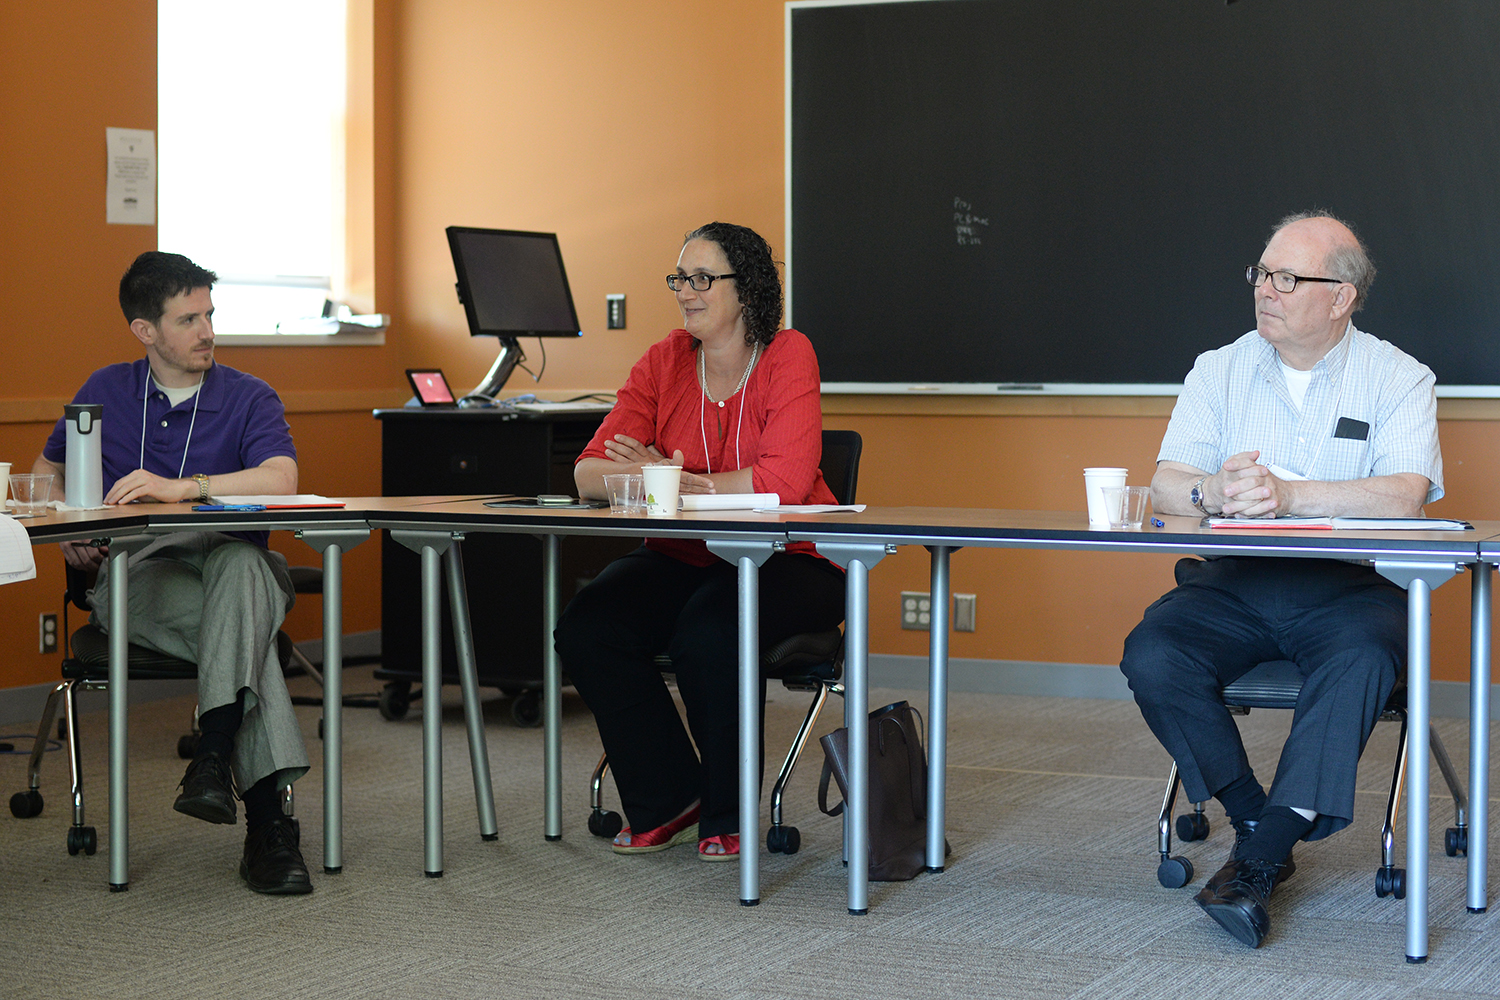 Conference participants also discussed extra-curricular teaching and advising, project based teaching, course titles and materials, teaching finance at a liberal arts college versus a business school, among other topics.